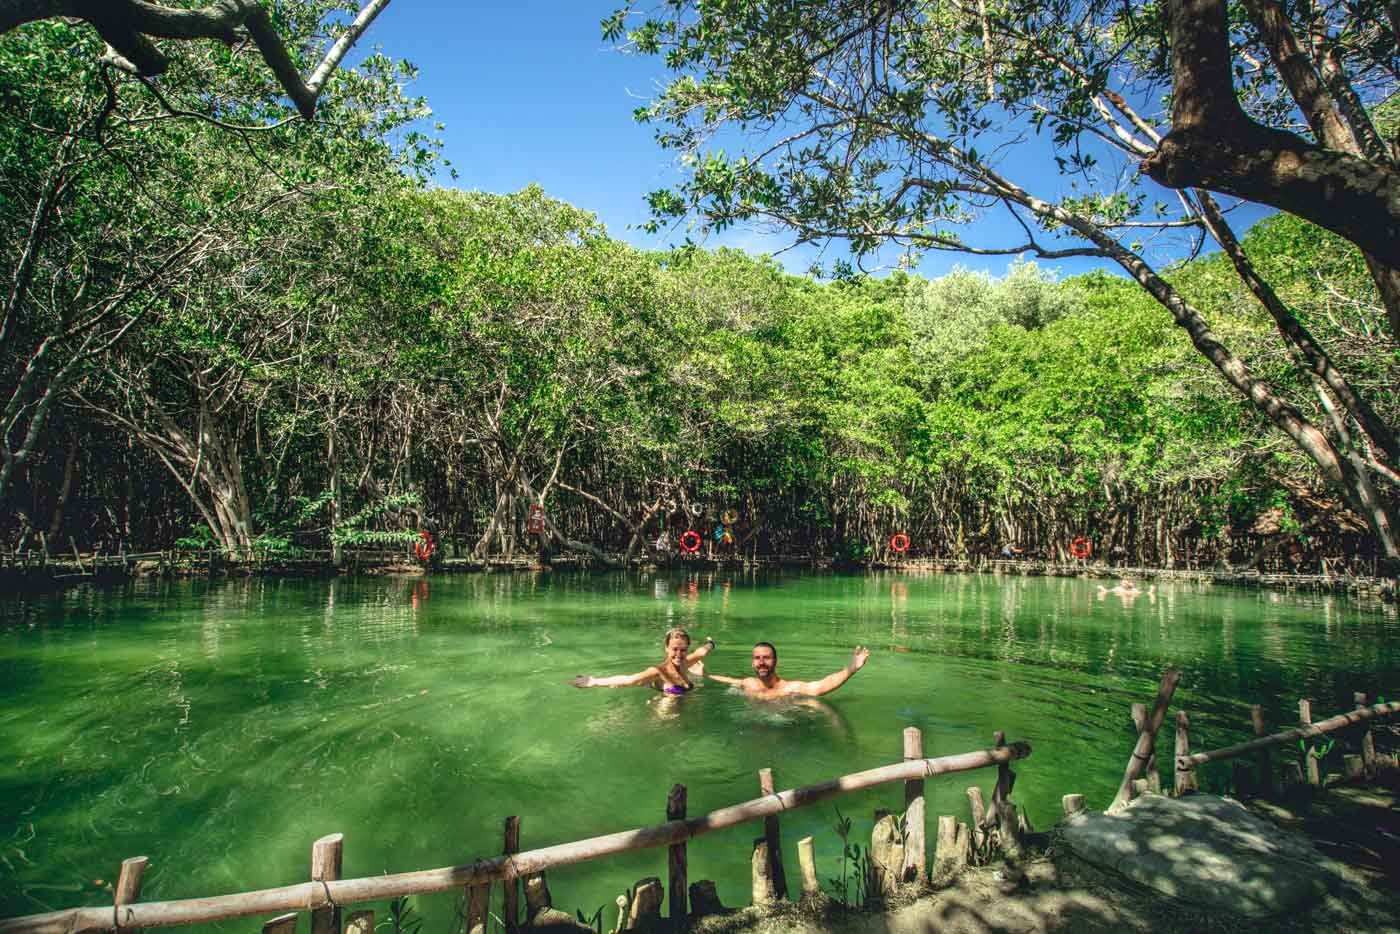 Swimming in a cenote near Progreso, Yucatan, Mexico